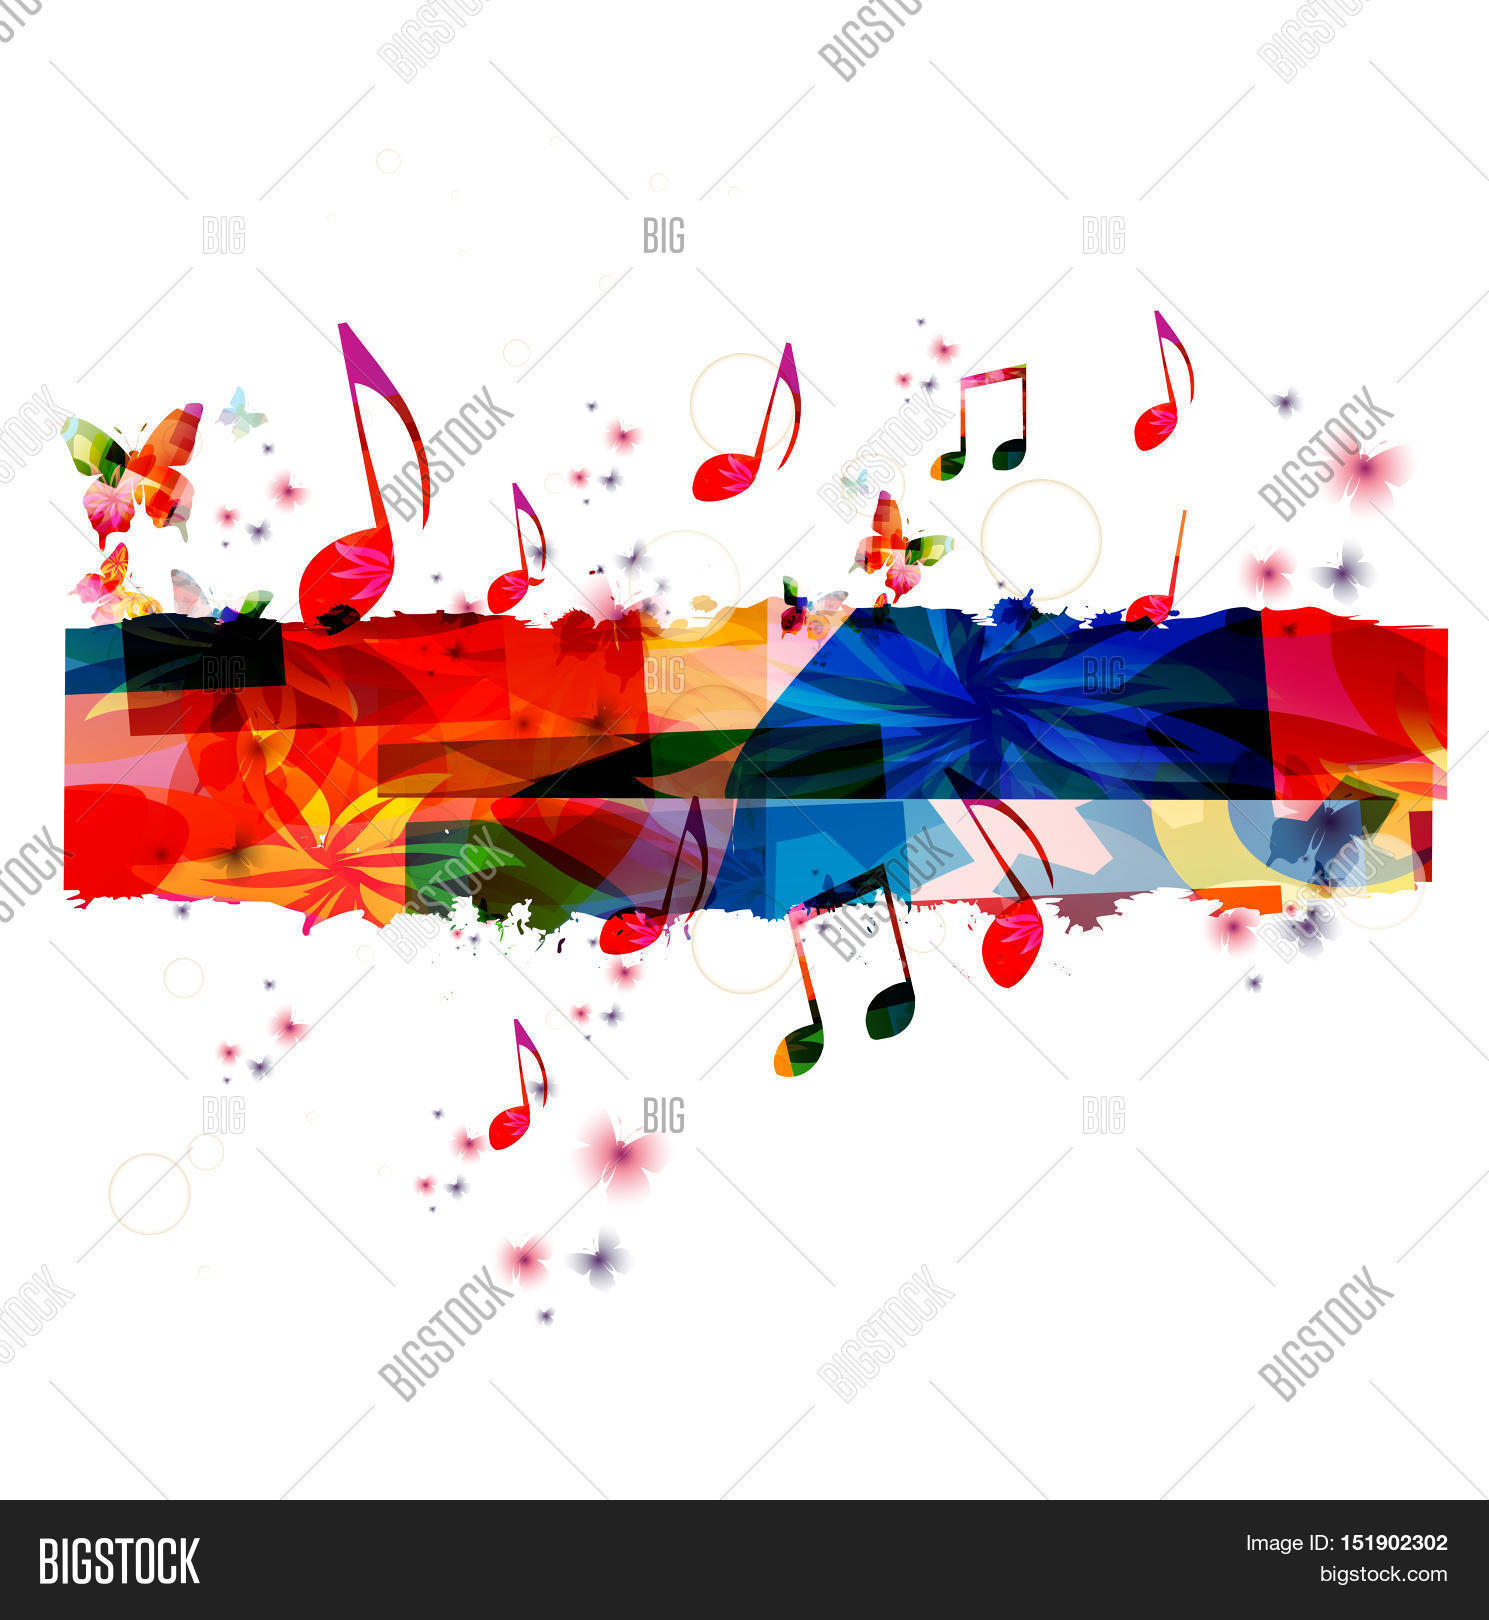 Poster design music - Creative Music Template Vector Illustration Colorful Music Notes Music Background Musical Design